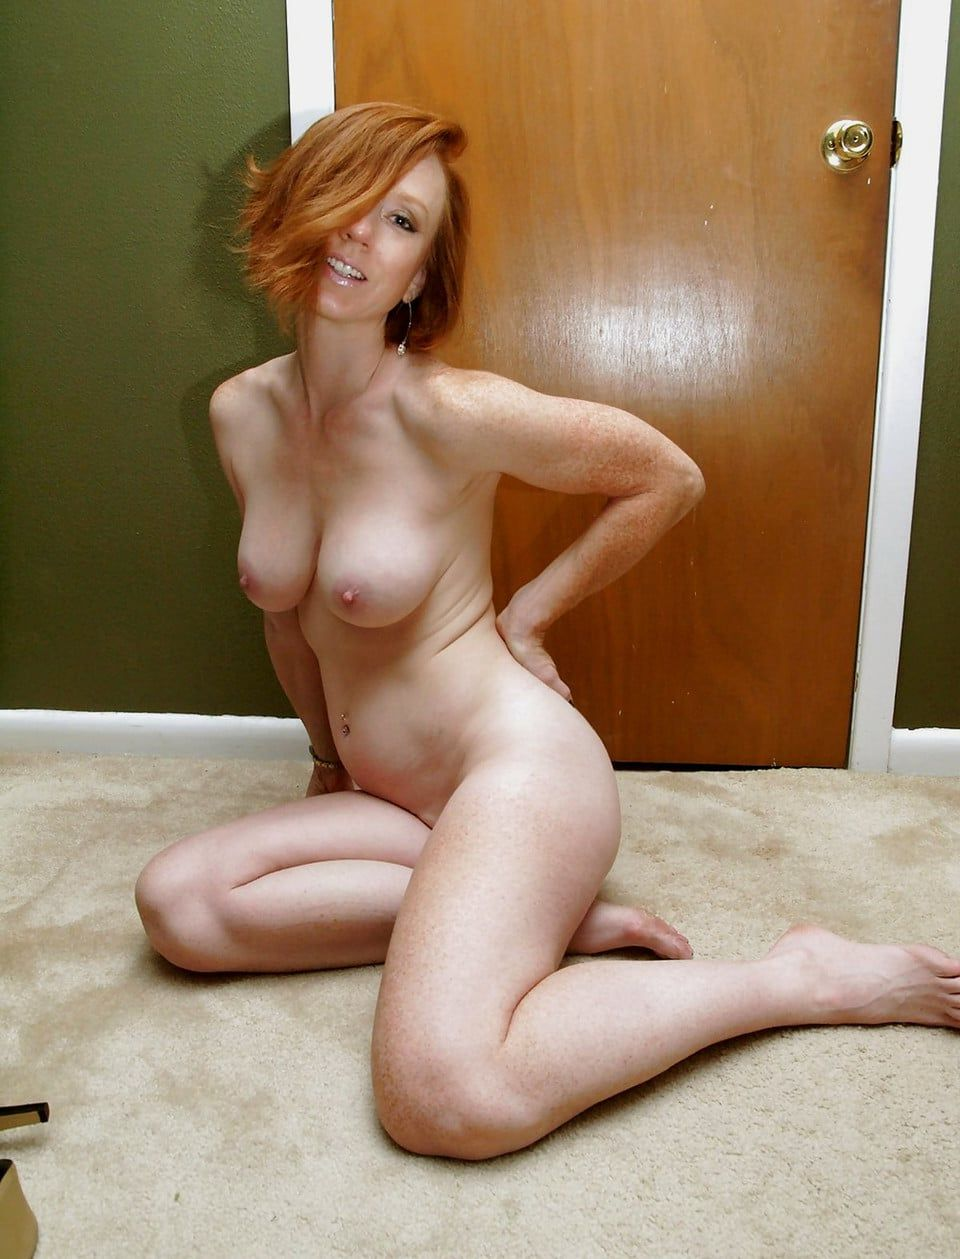 wife spreads her legs xvideos com